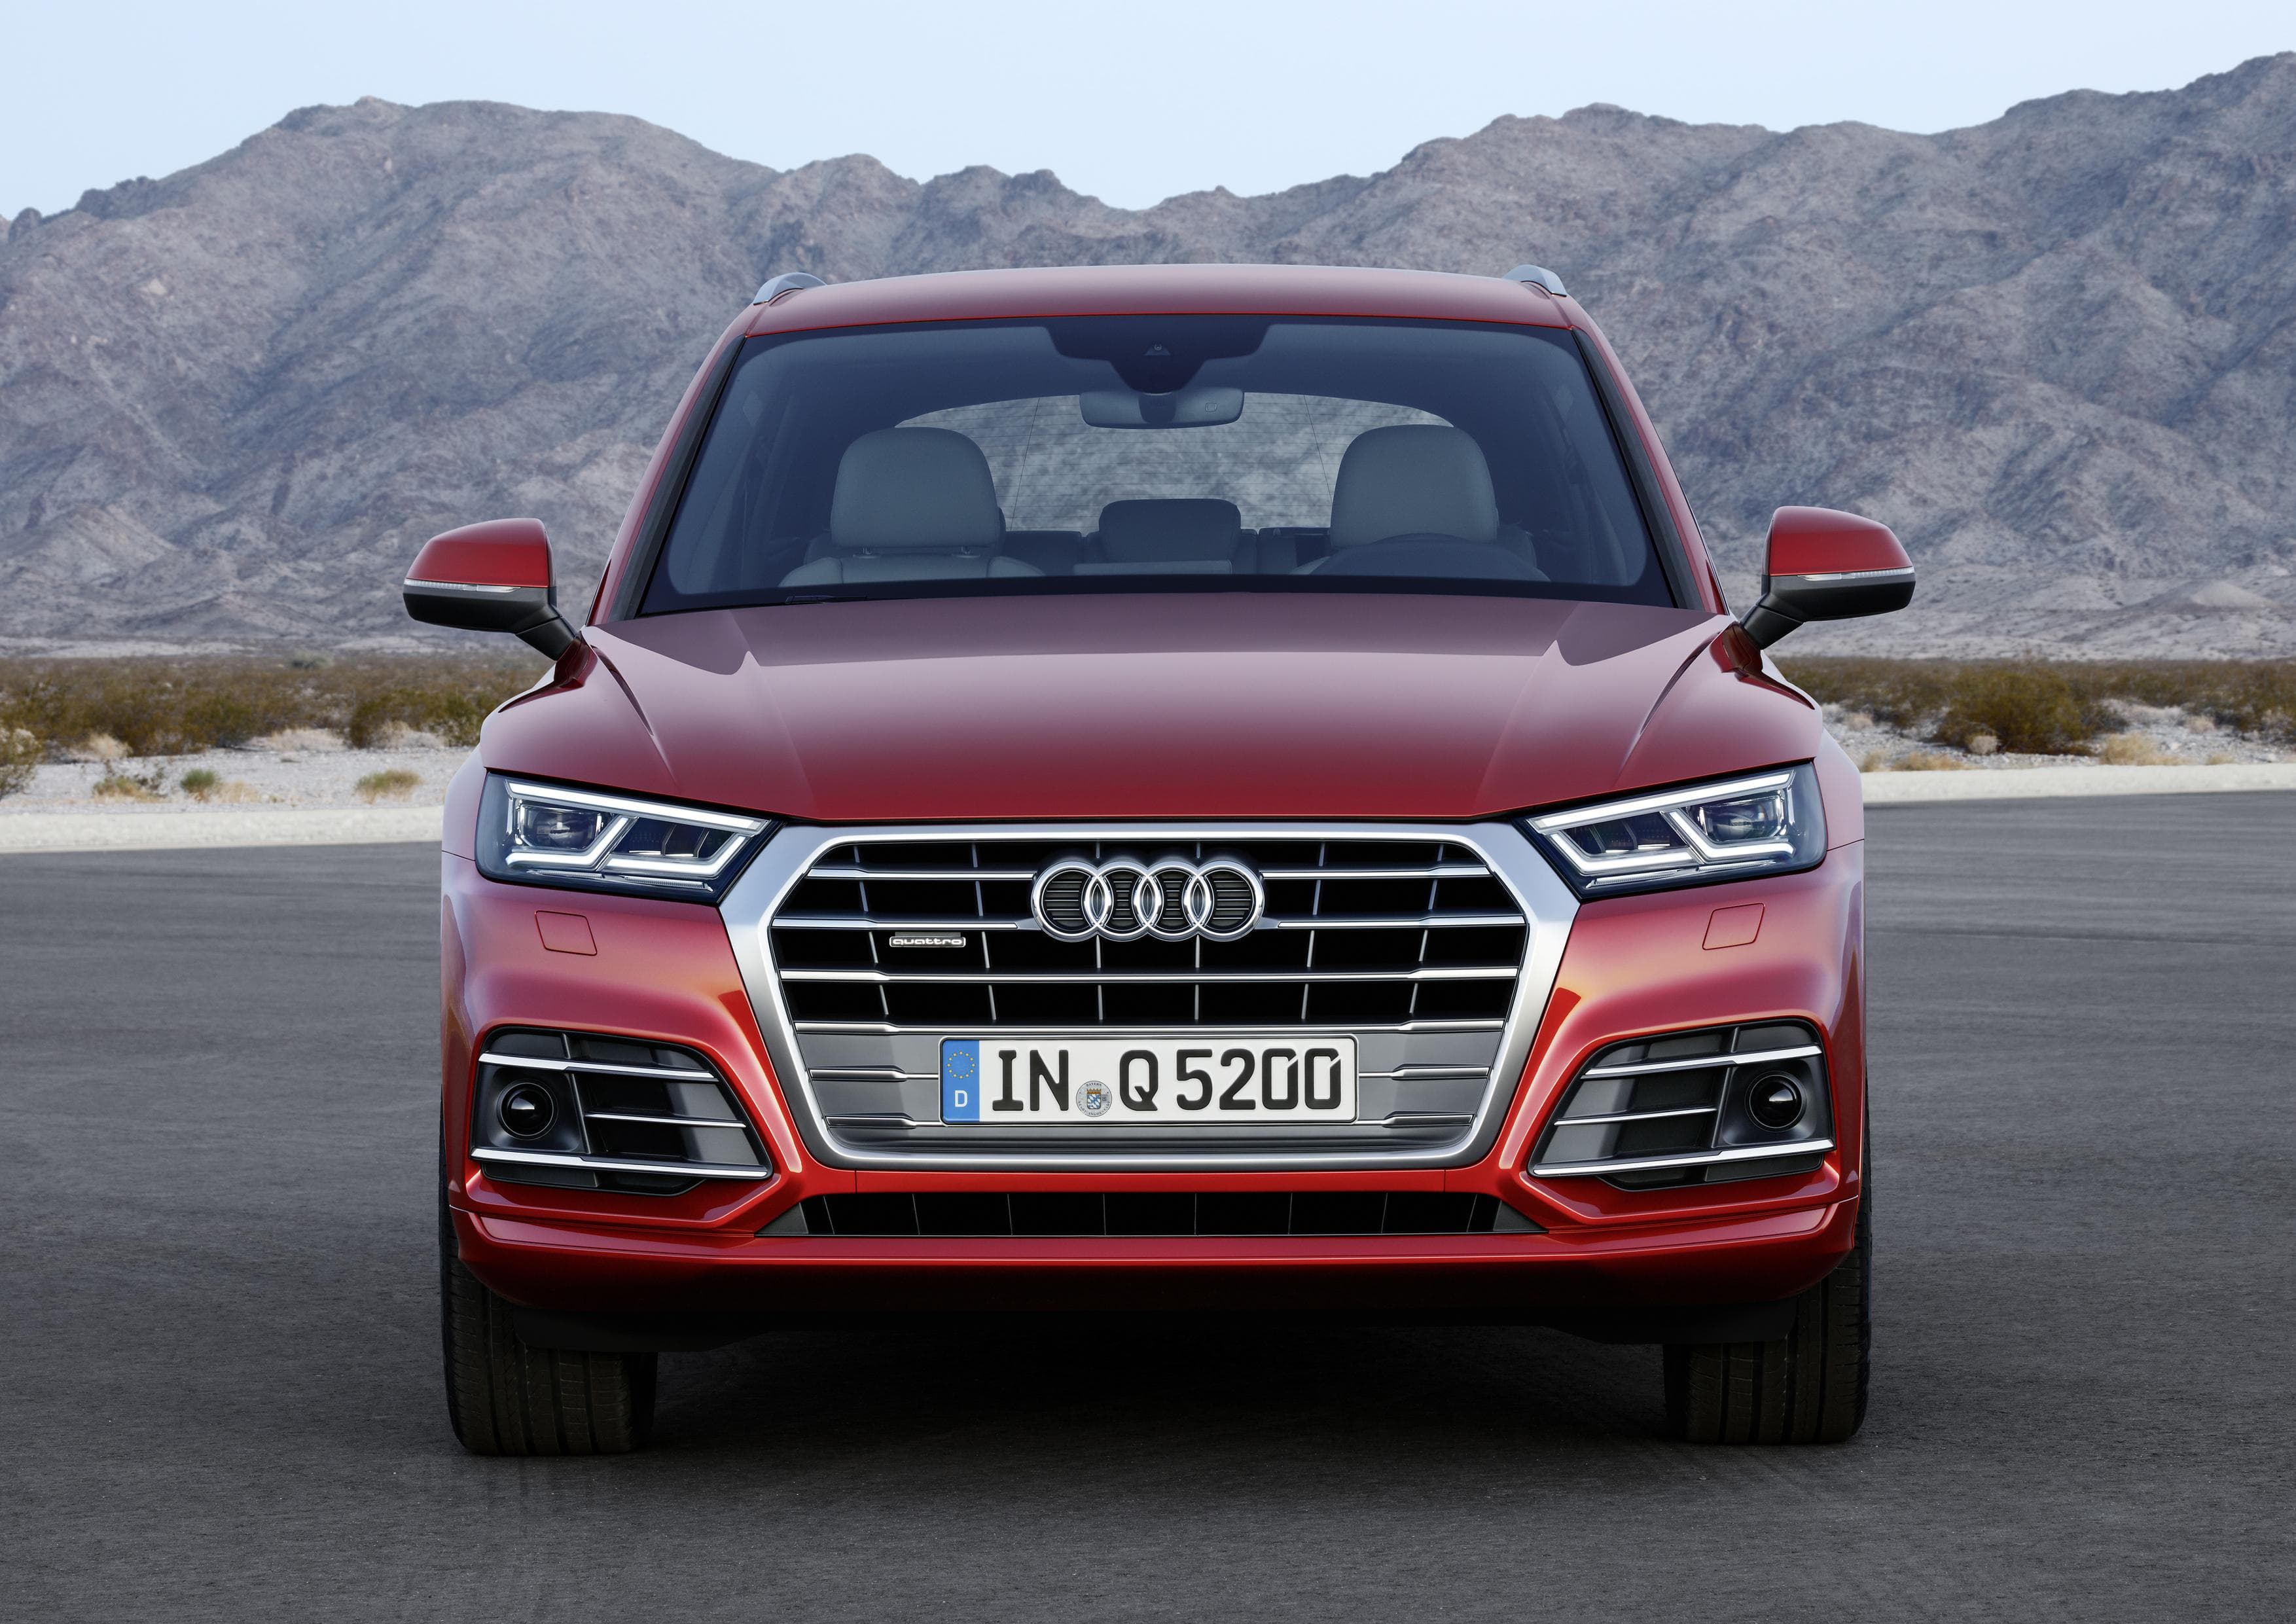 Audi Q5 II HD Desktop Wallpapers